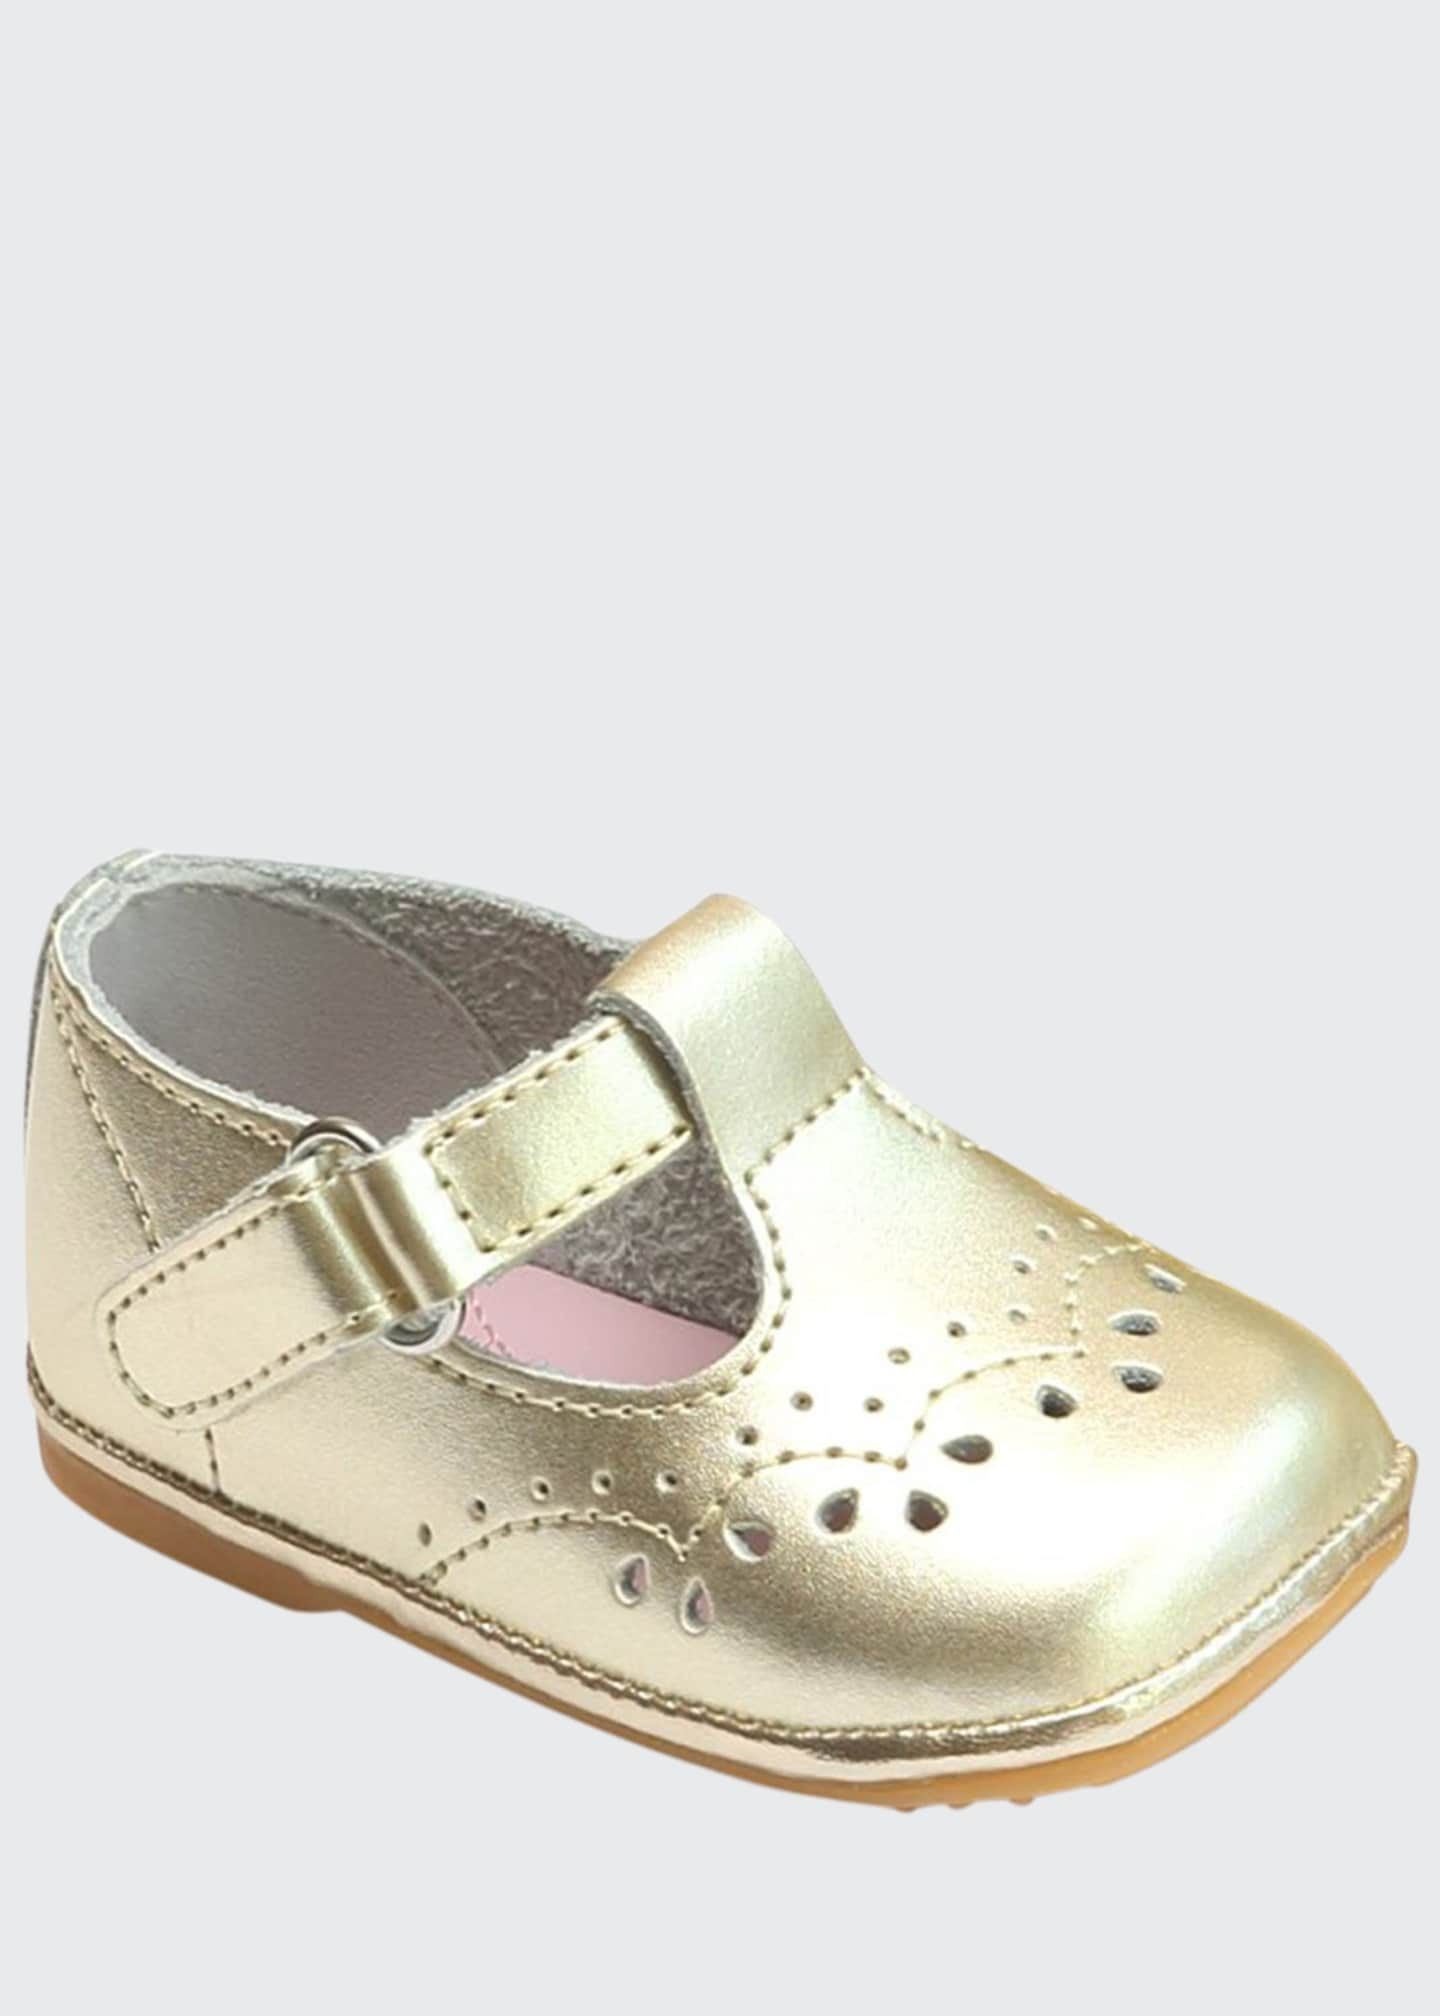 L'Amour Shoes Birdie Metallic Leather T-Strap Brogue Mary